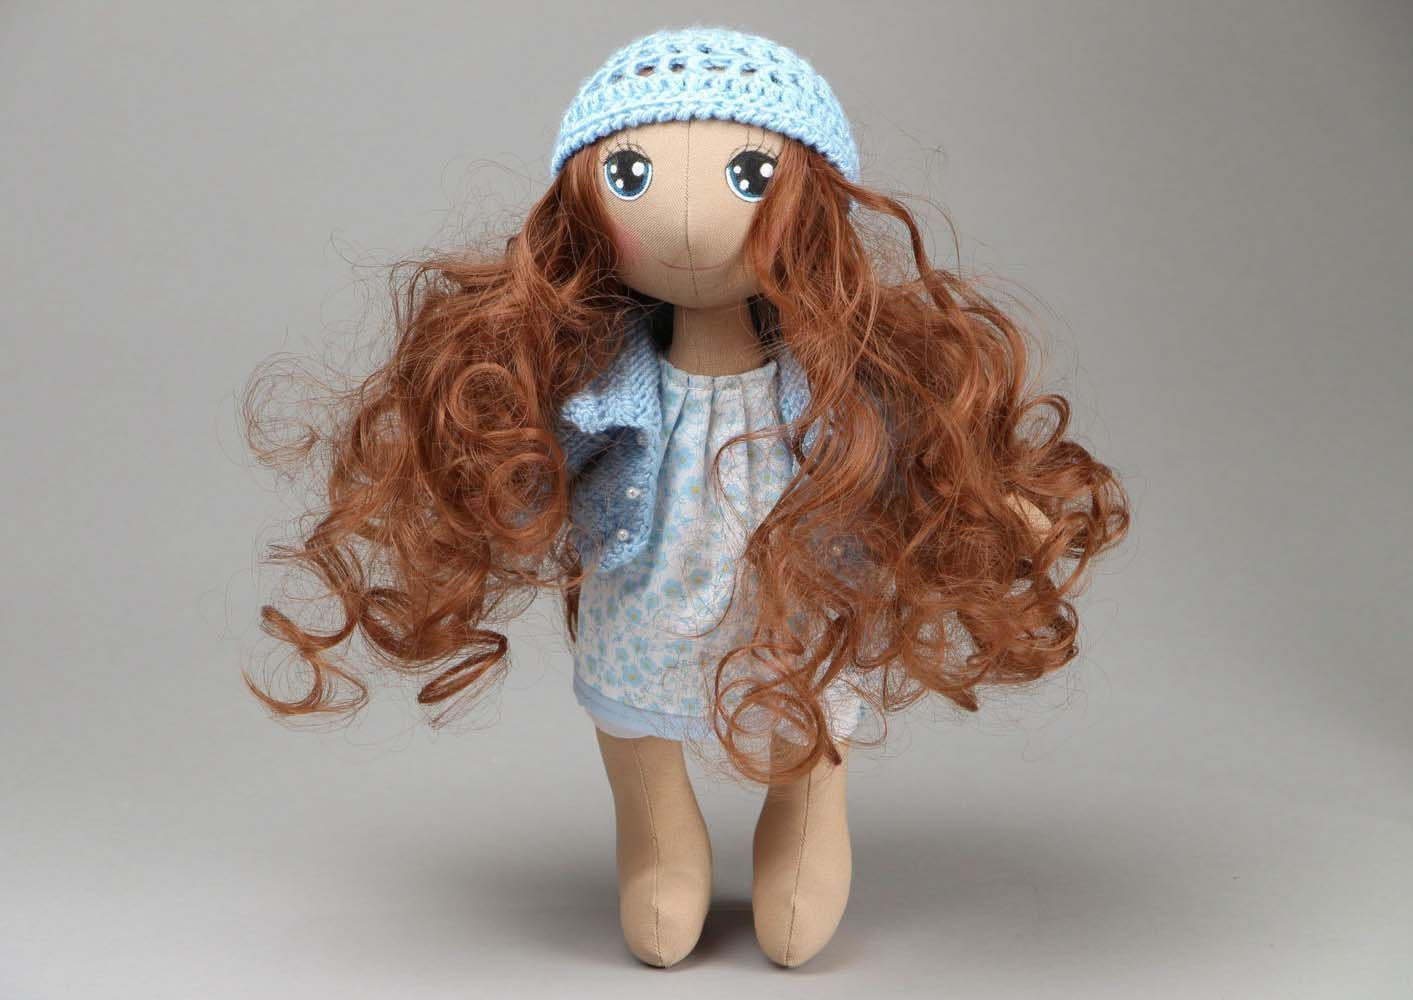 dolls Homemade design doll - MADEheart.com